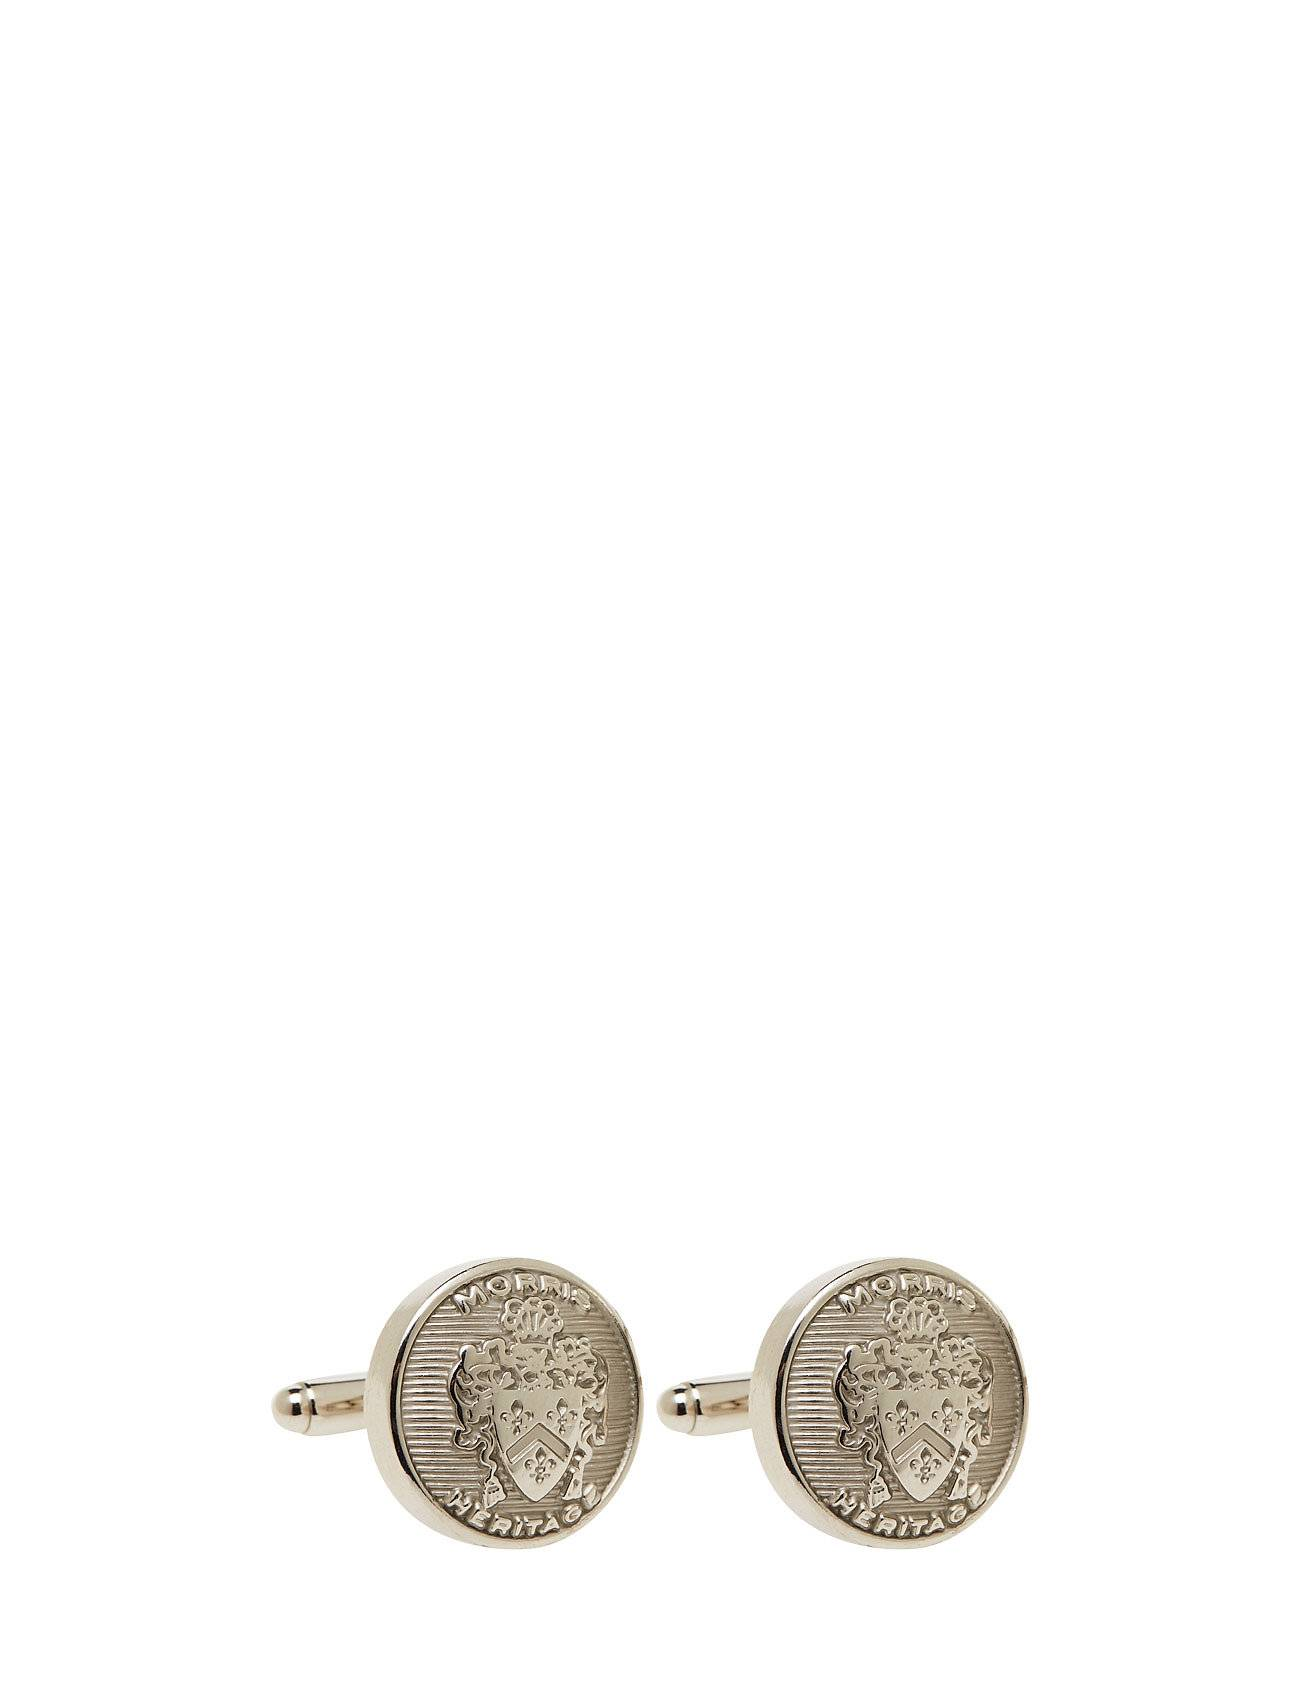 Morris Henry Cuff Link